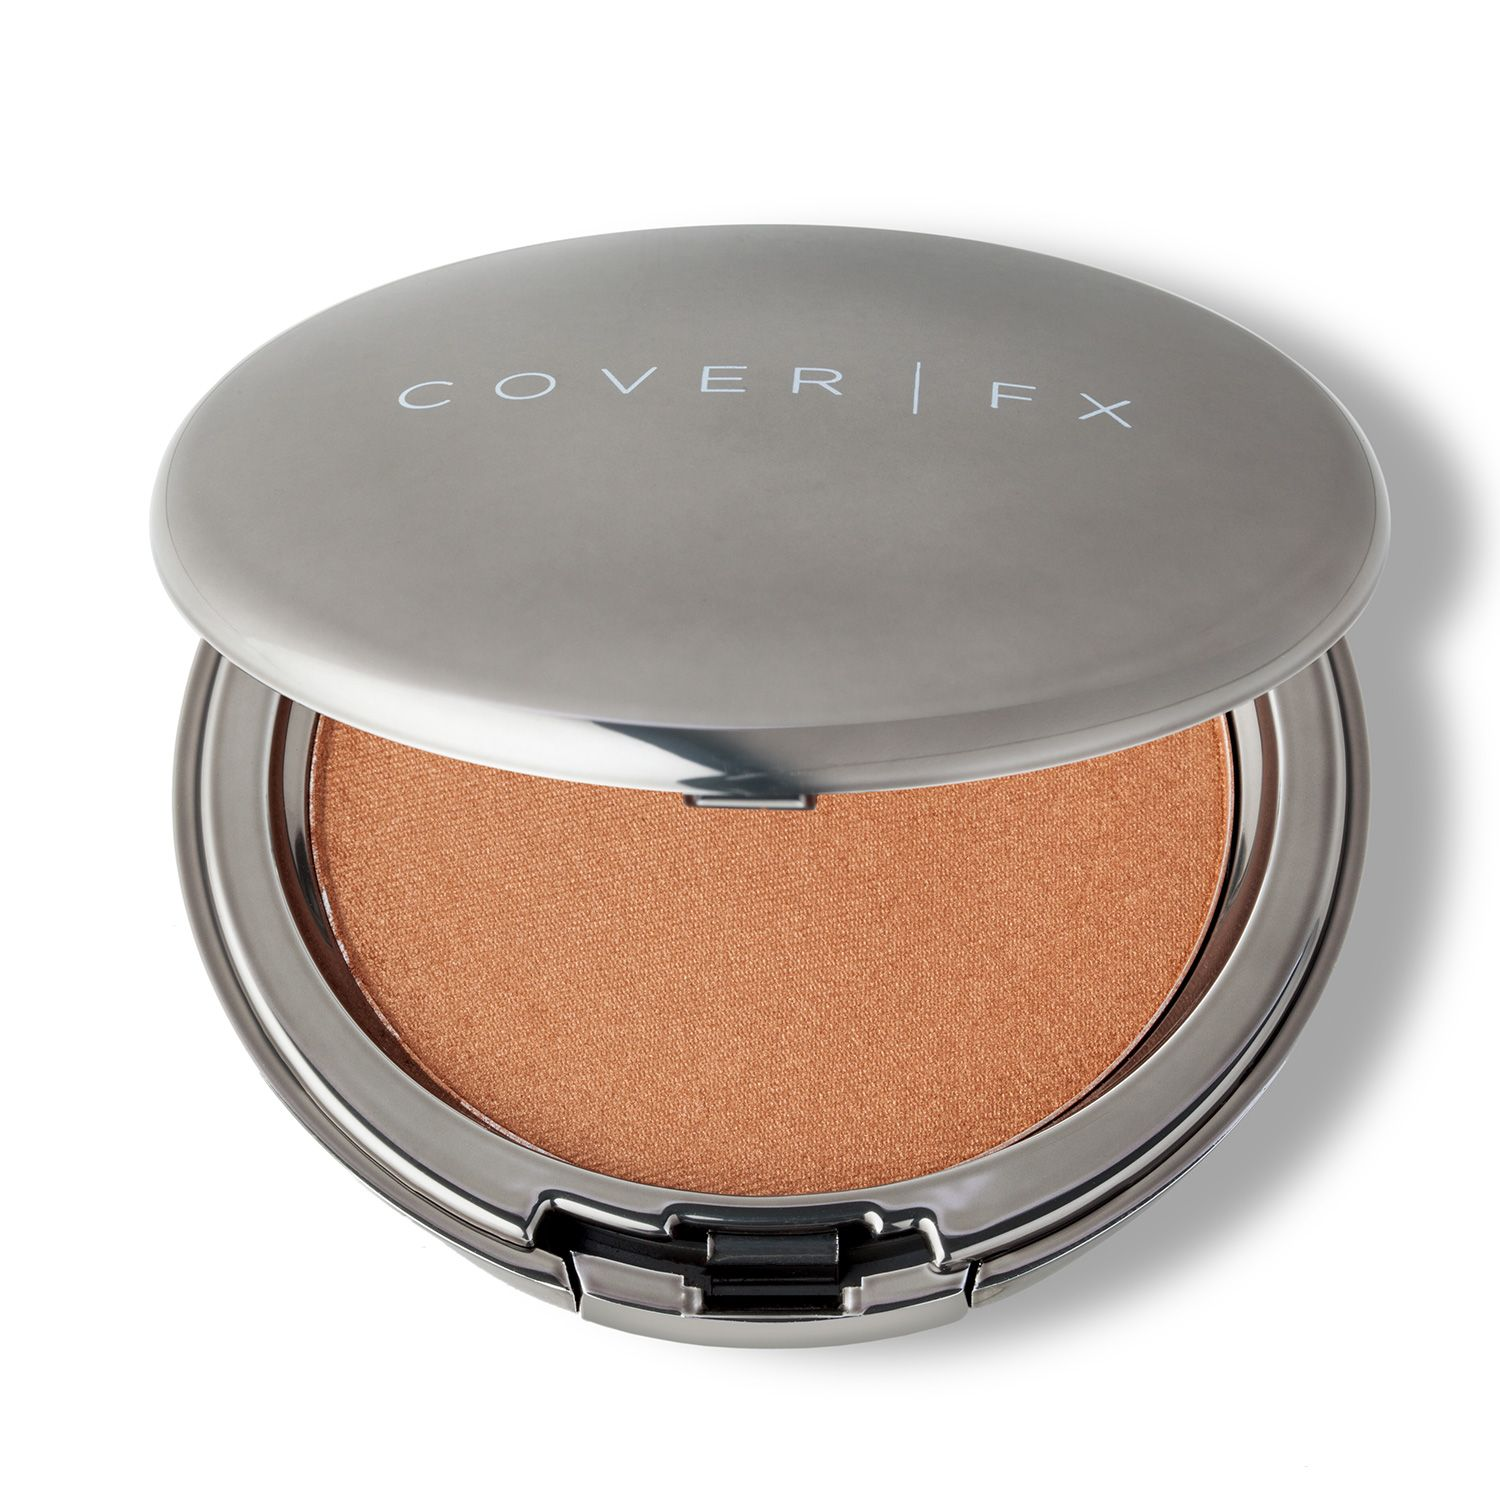 Cover FX Cover FX Perfect Light Highlighting Powder, Candlelight